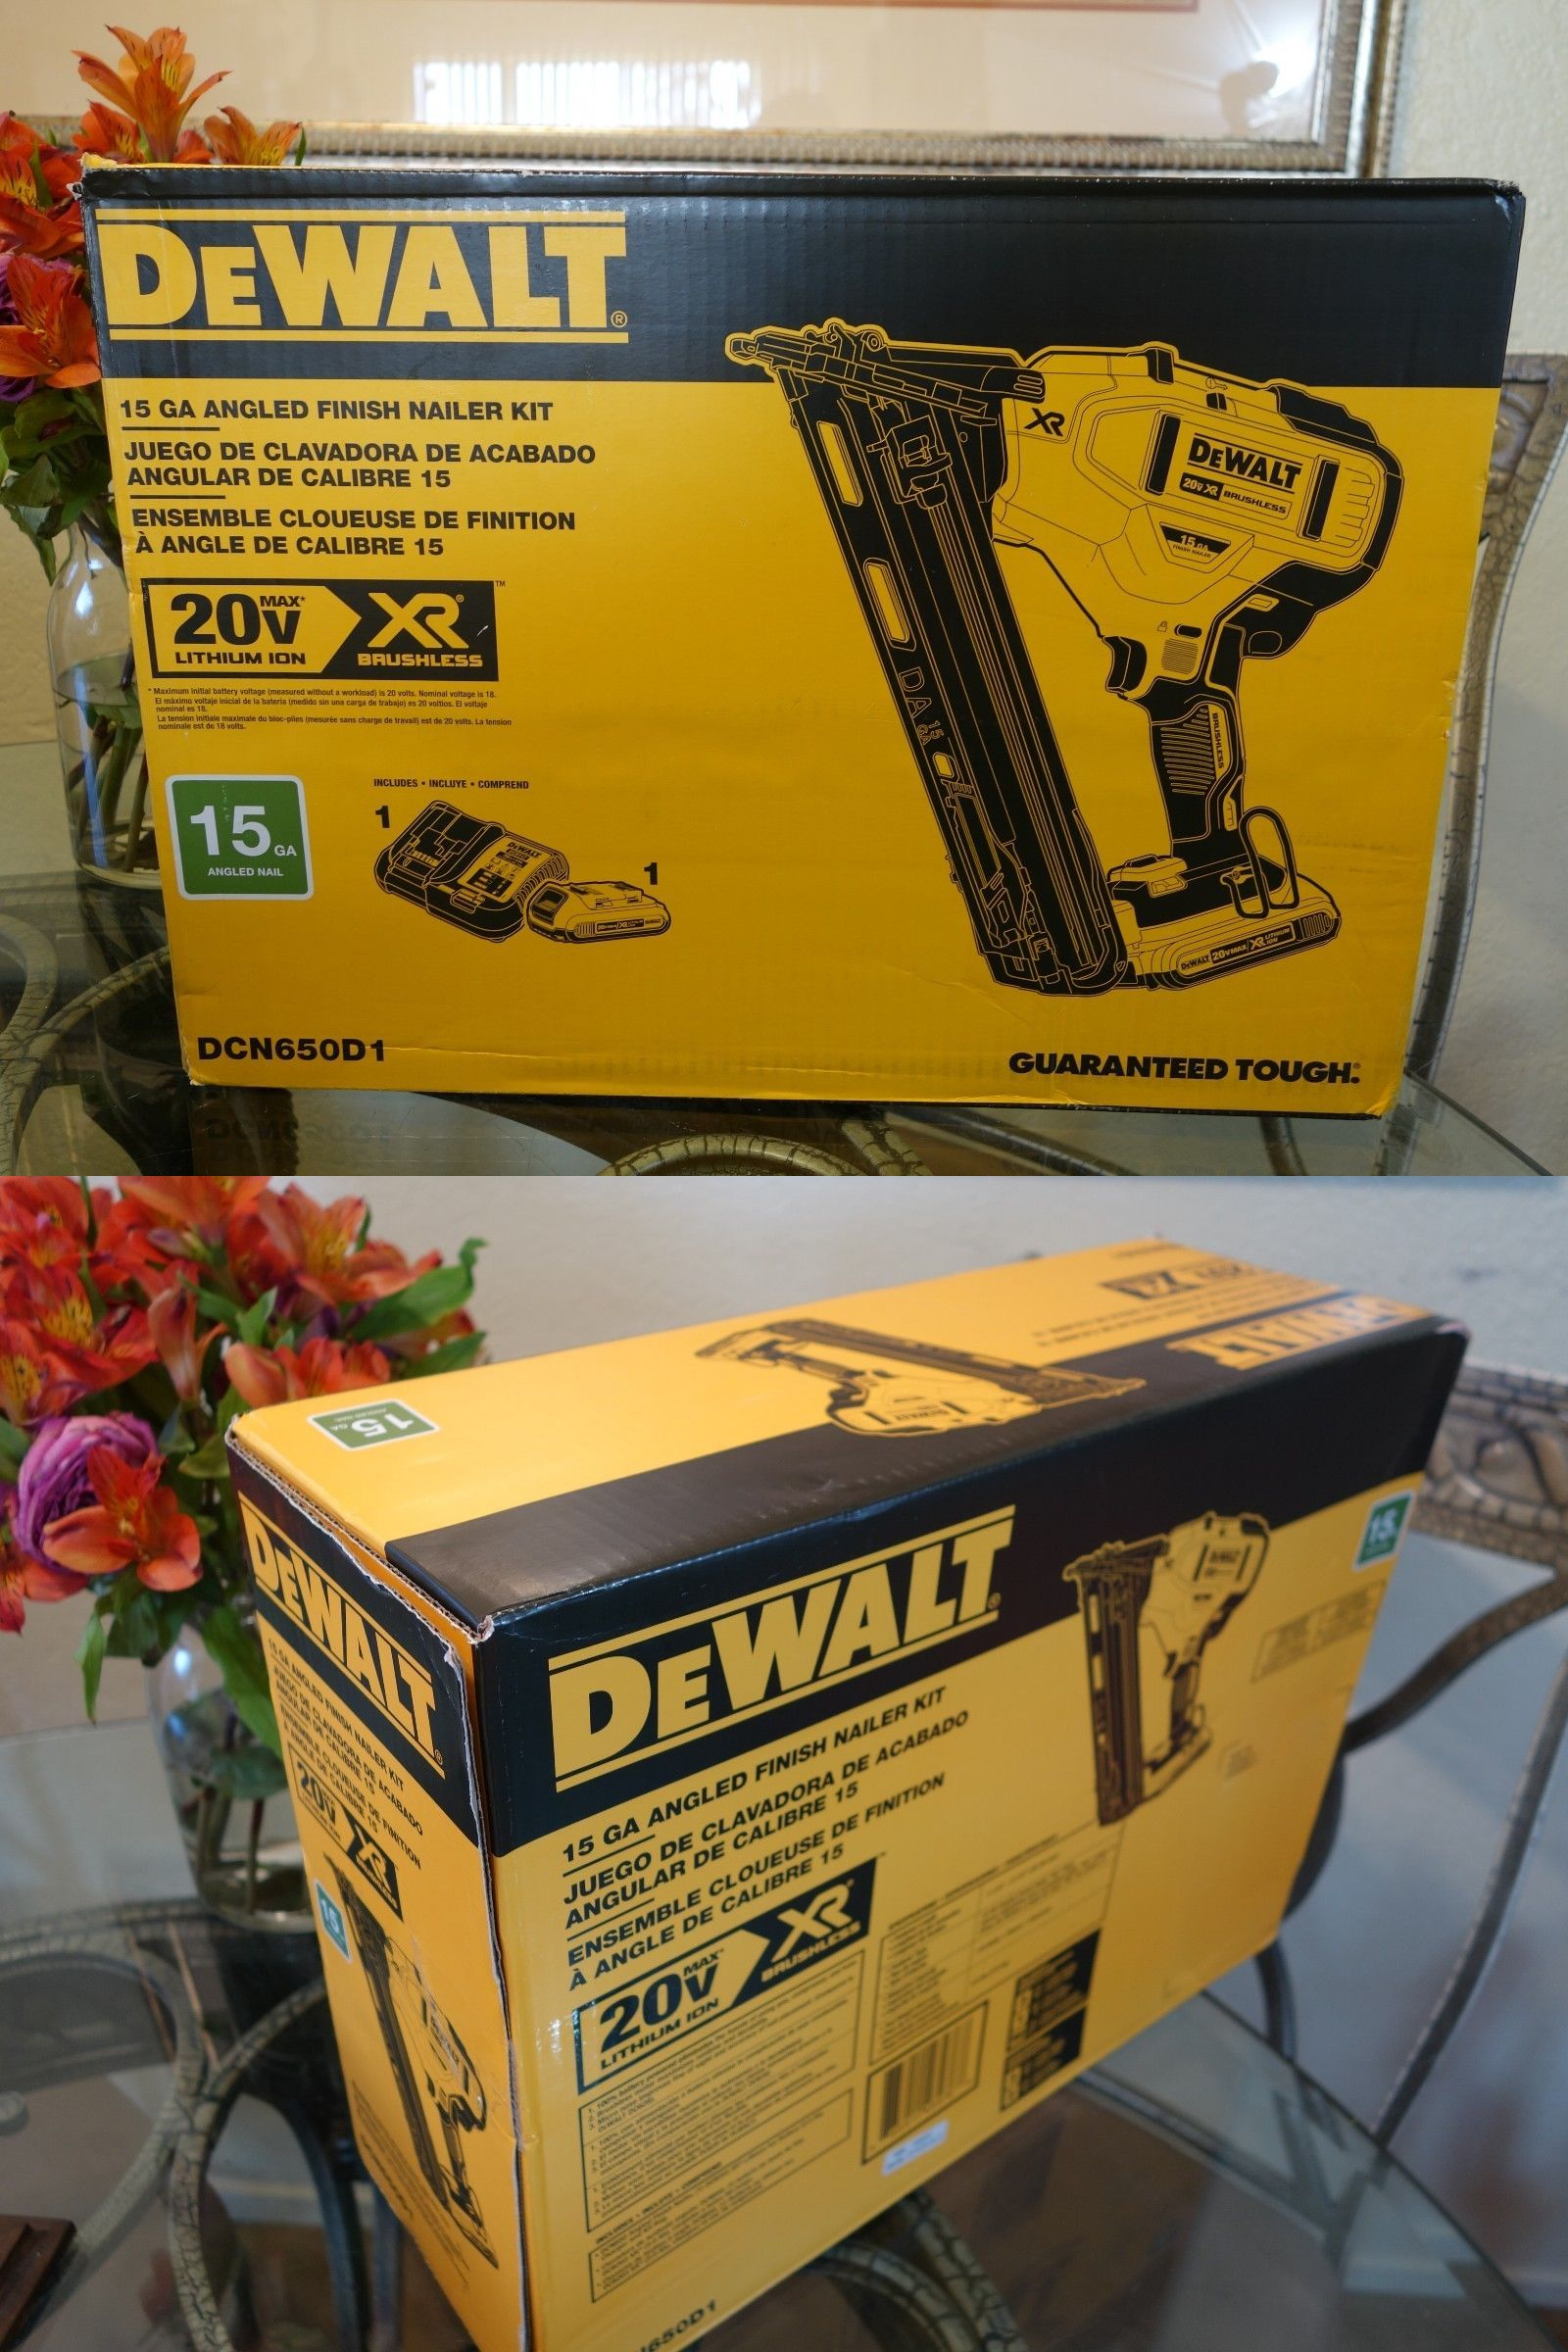 Nail And Staple Guns 122828 Dewalt Dcn650d1 15 Gauge 20 Volt Xr Brushless Angled Finish Nailer Kit 20v 15ga Buy It Now Only 305 Nailer Dewalt Staple Guns